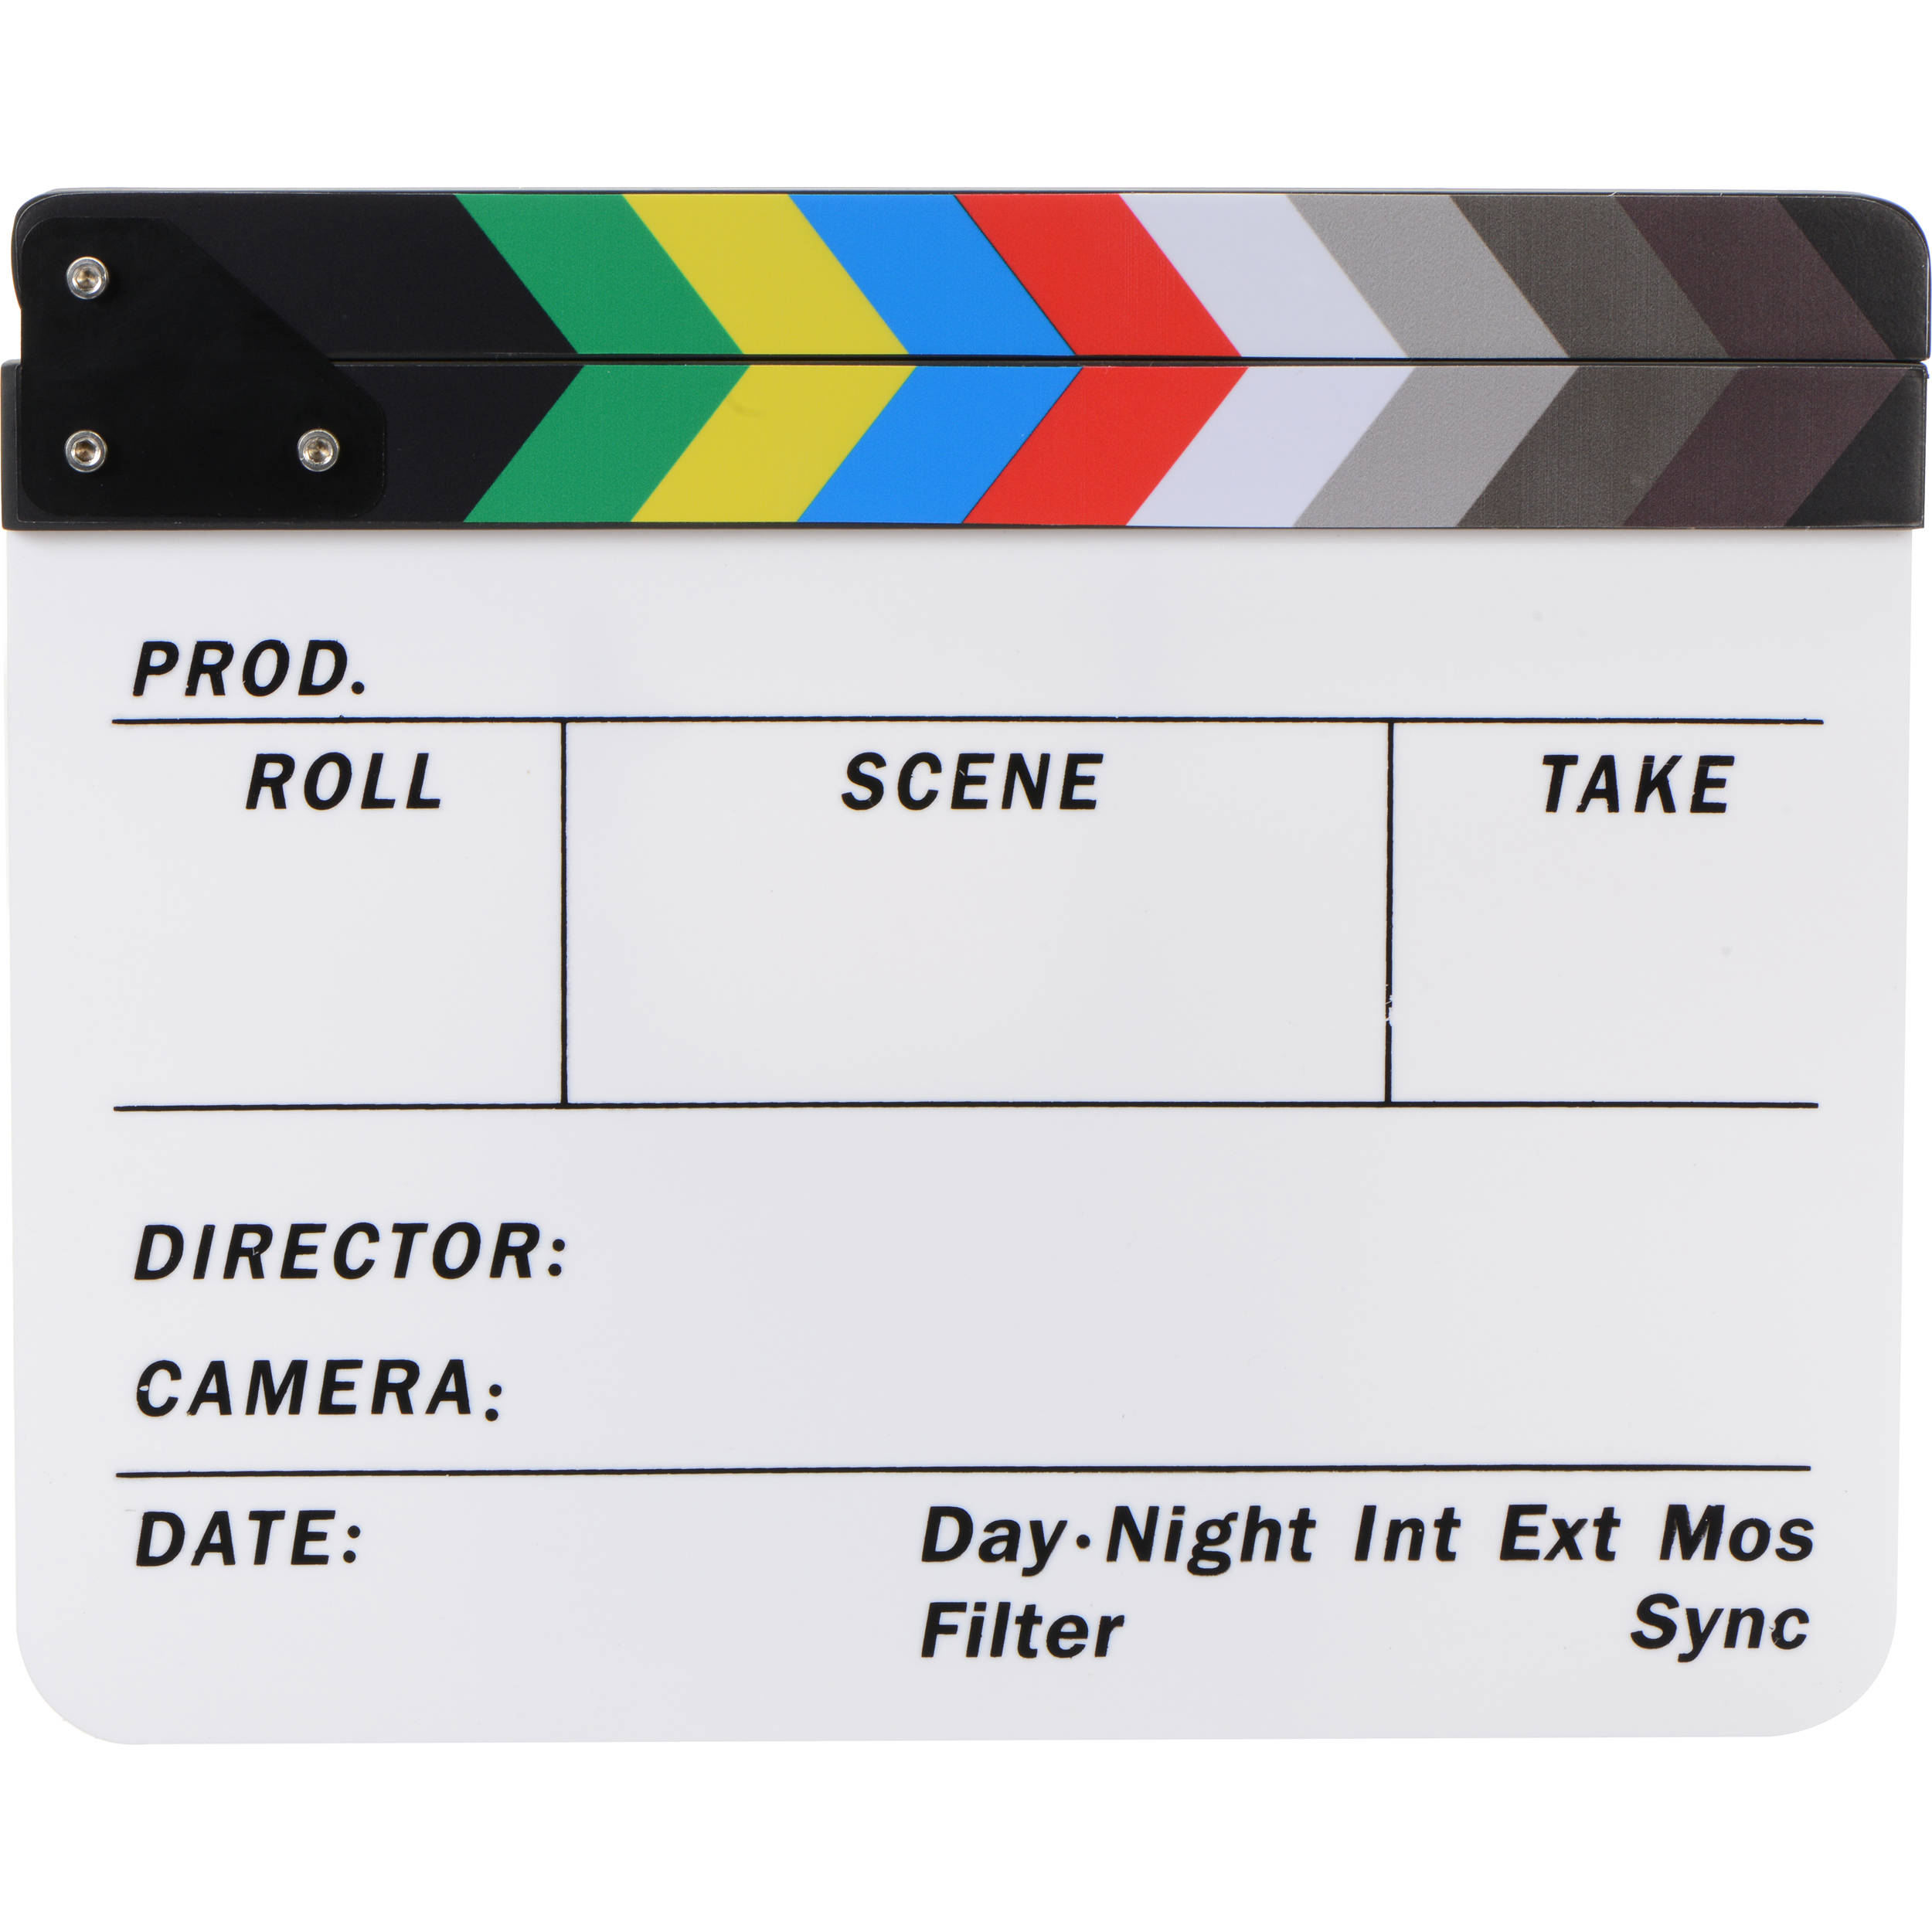 Production Slates Bh Photo Video Lighting Products Metal Related Searchesclapper Switch Clap Light Dot Line Color Clapboard